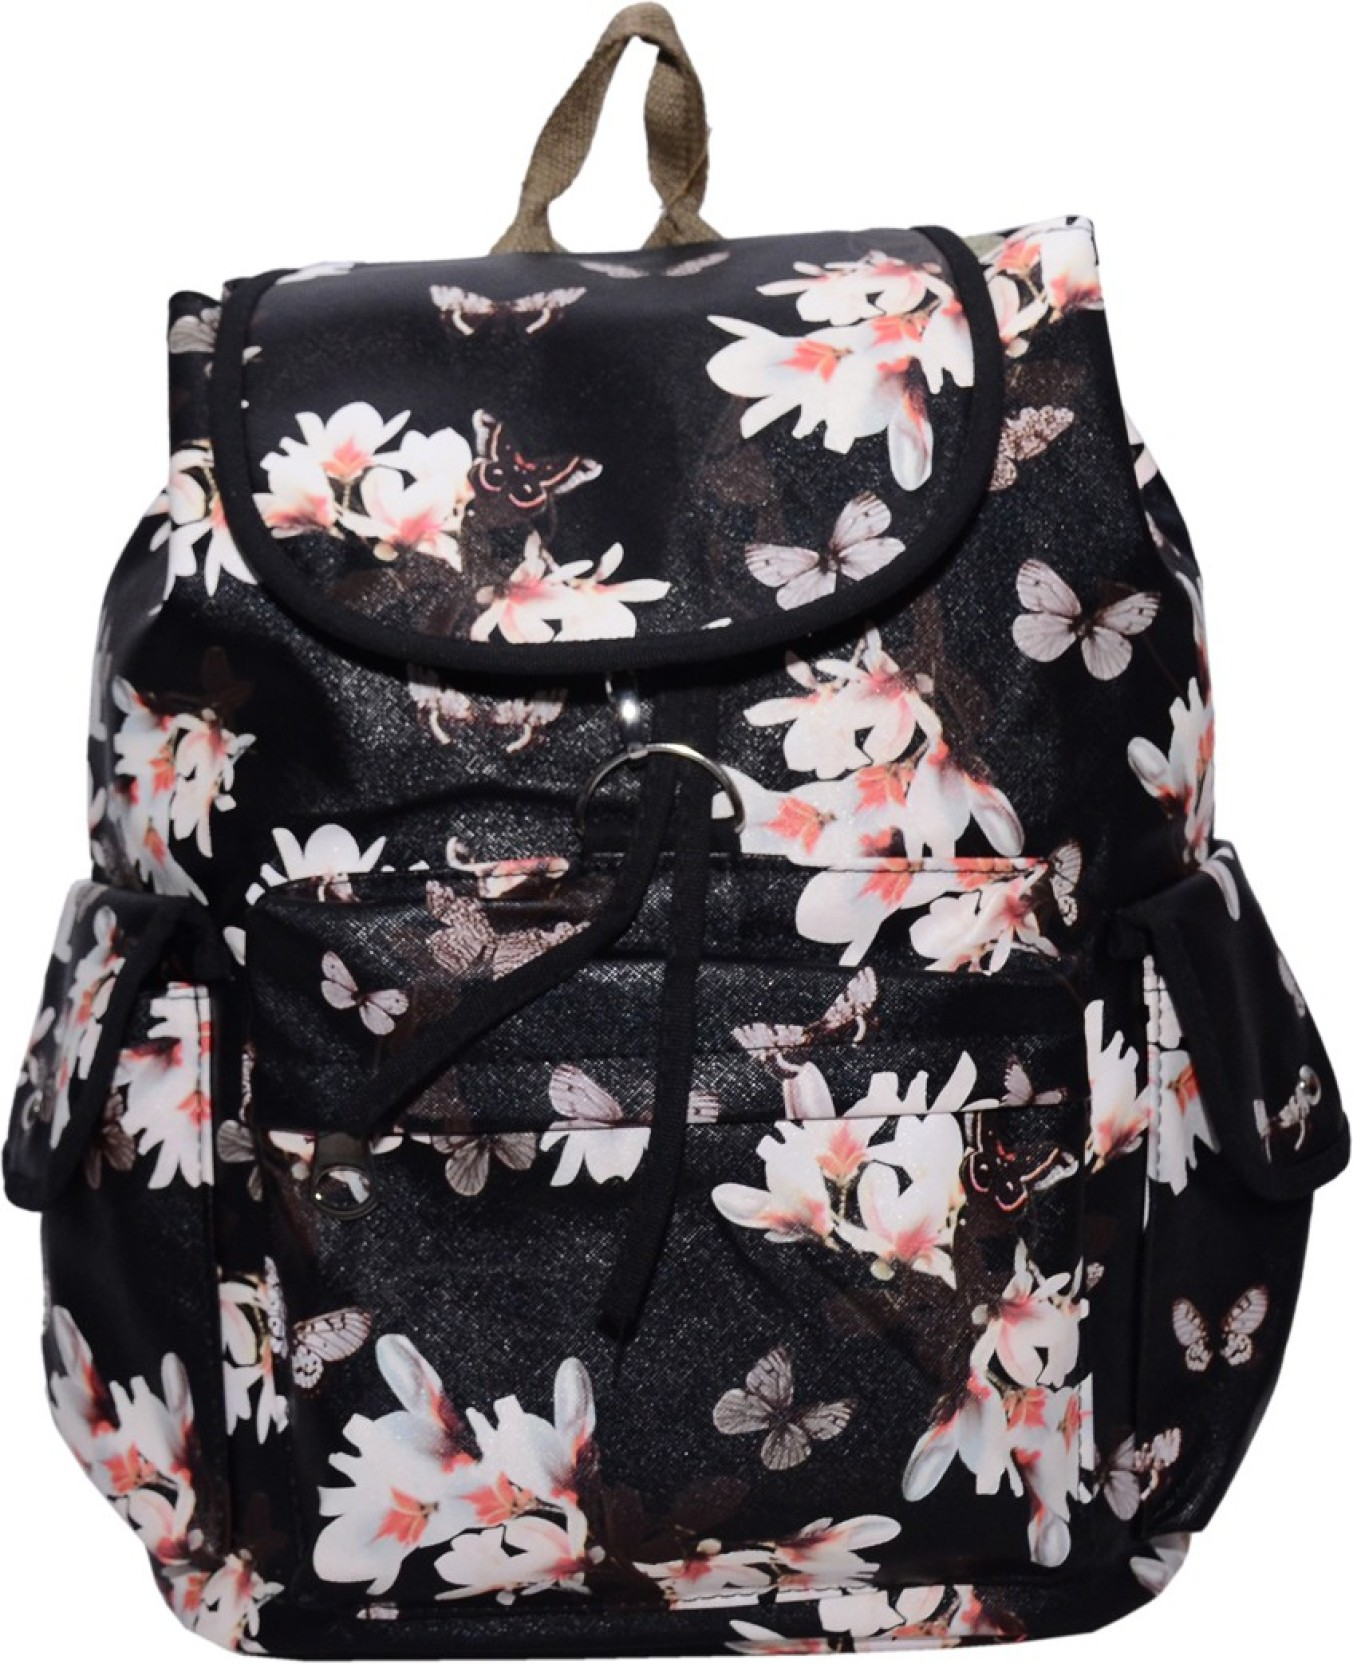 7ff5b1616e Ruff Multi Colour School bag Printed Backpack Casual Style Women Bags  Double-Shoulder Sweet Stripe Canvas School Collage Travel Bag Girls Backpack  3.5 L ...